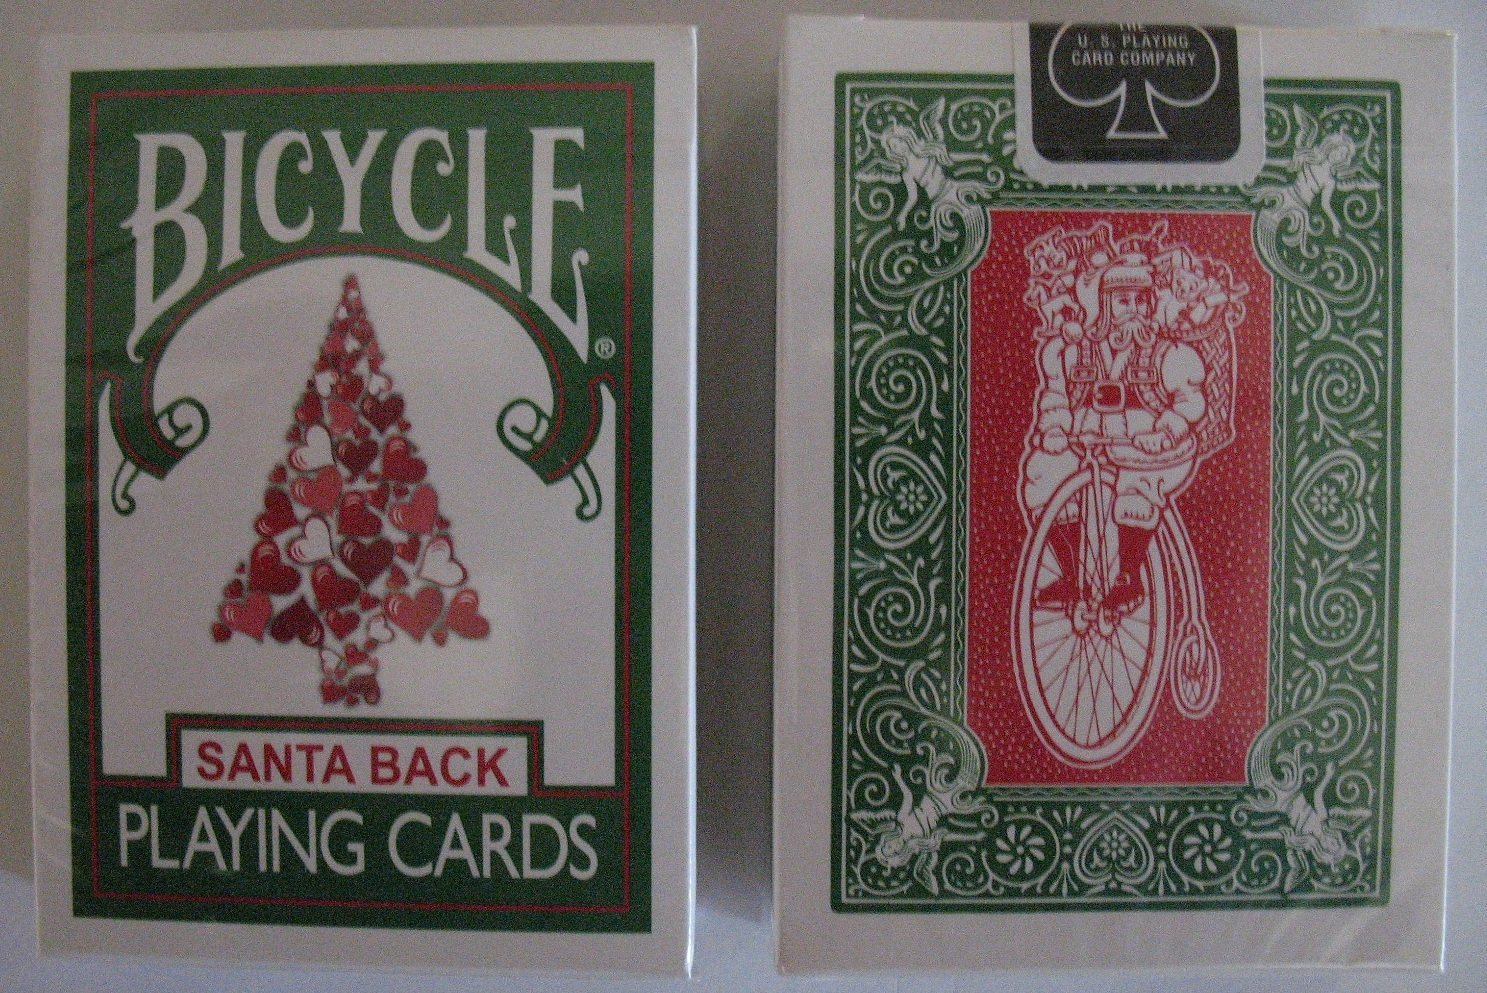 Bicycle 245 Green Deck Red Santa Maiden Back Playing Cards collectible playing cards, santa maiden back, magic cards